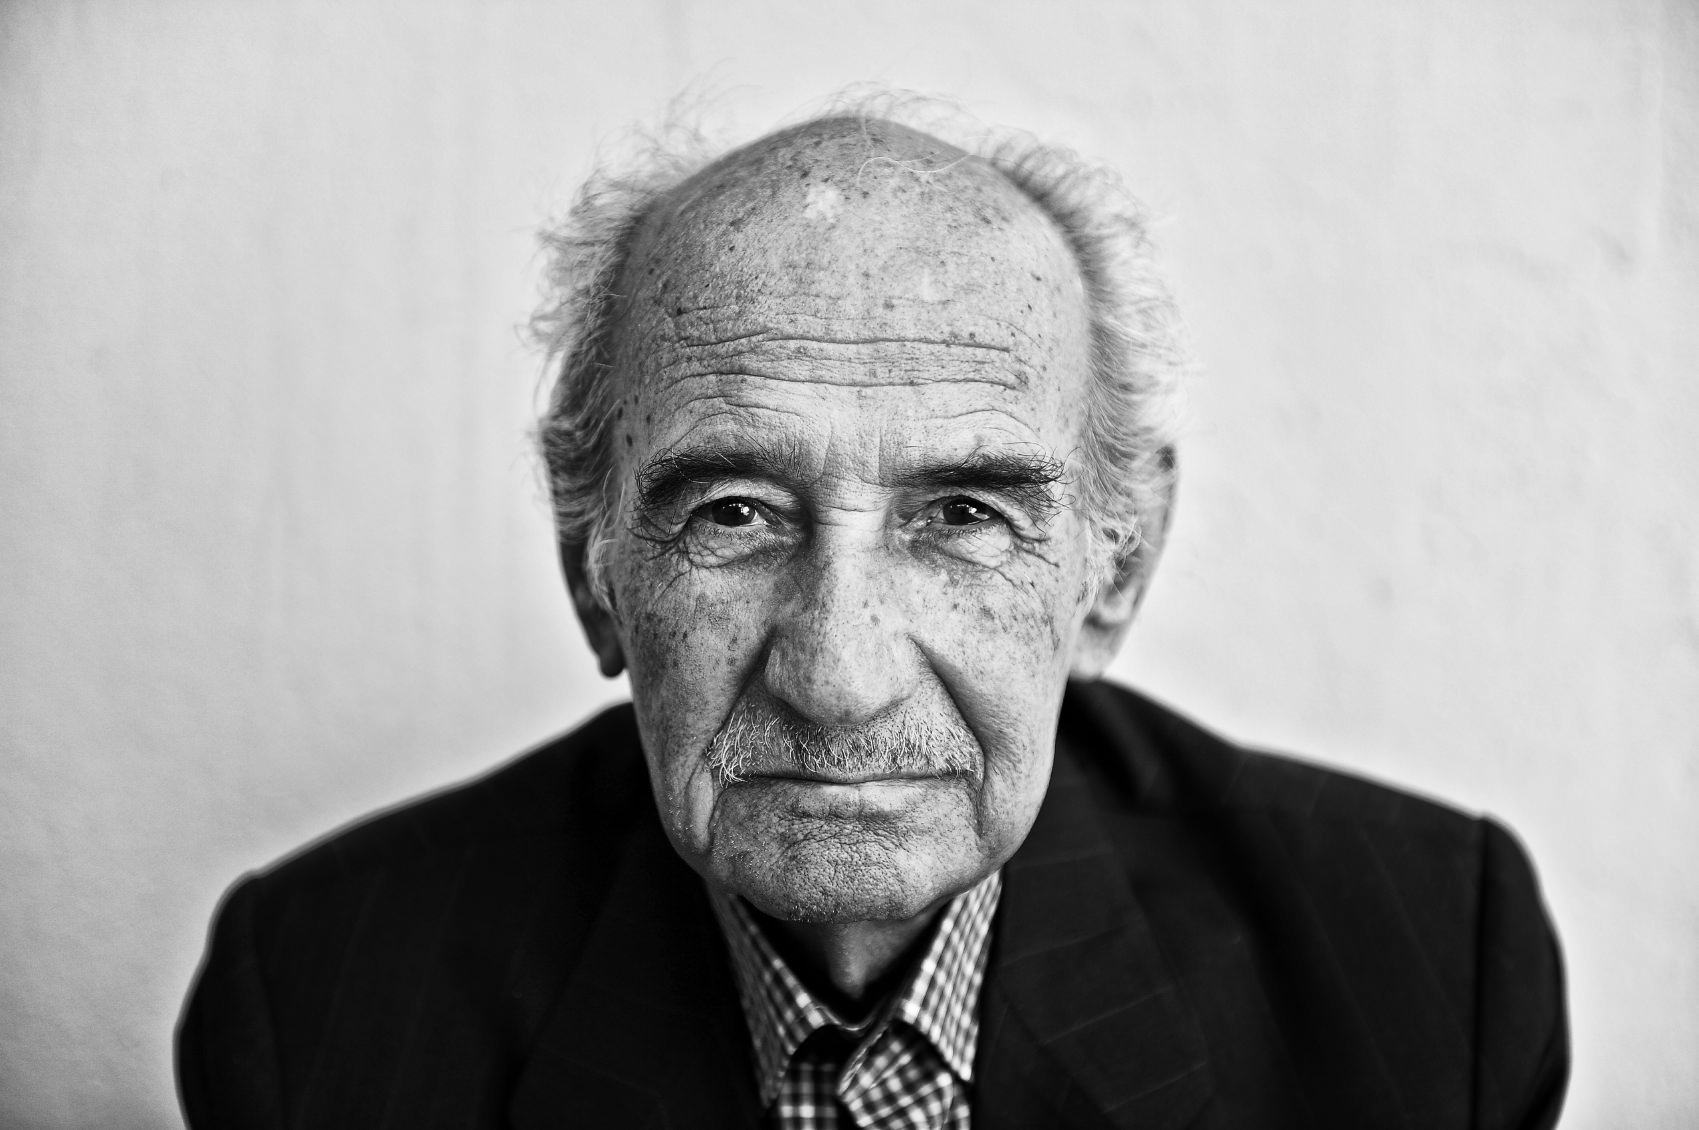 Black white portraits of old men